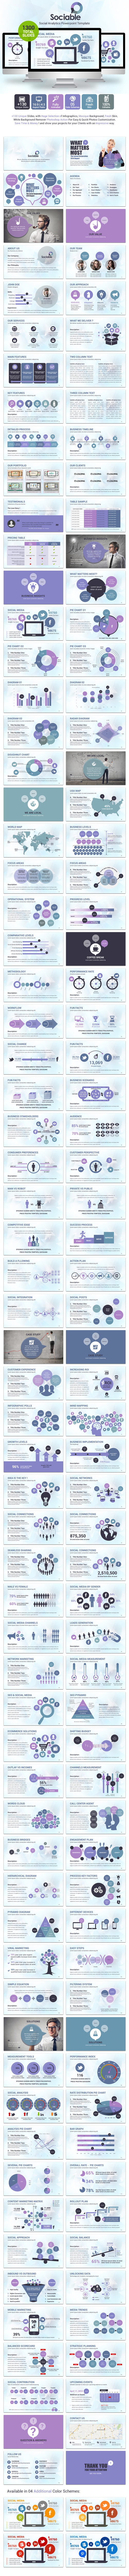 Sociable Powerpoint Template - Business PowerPoint Templates